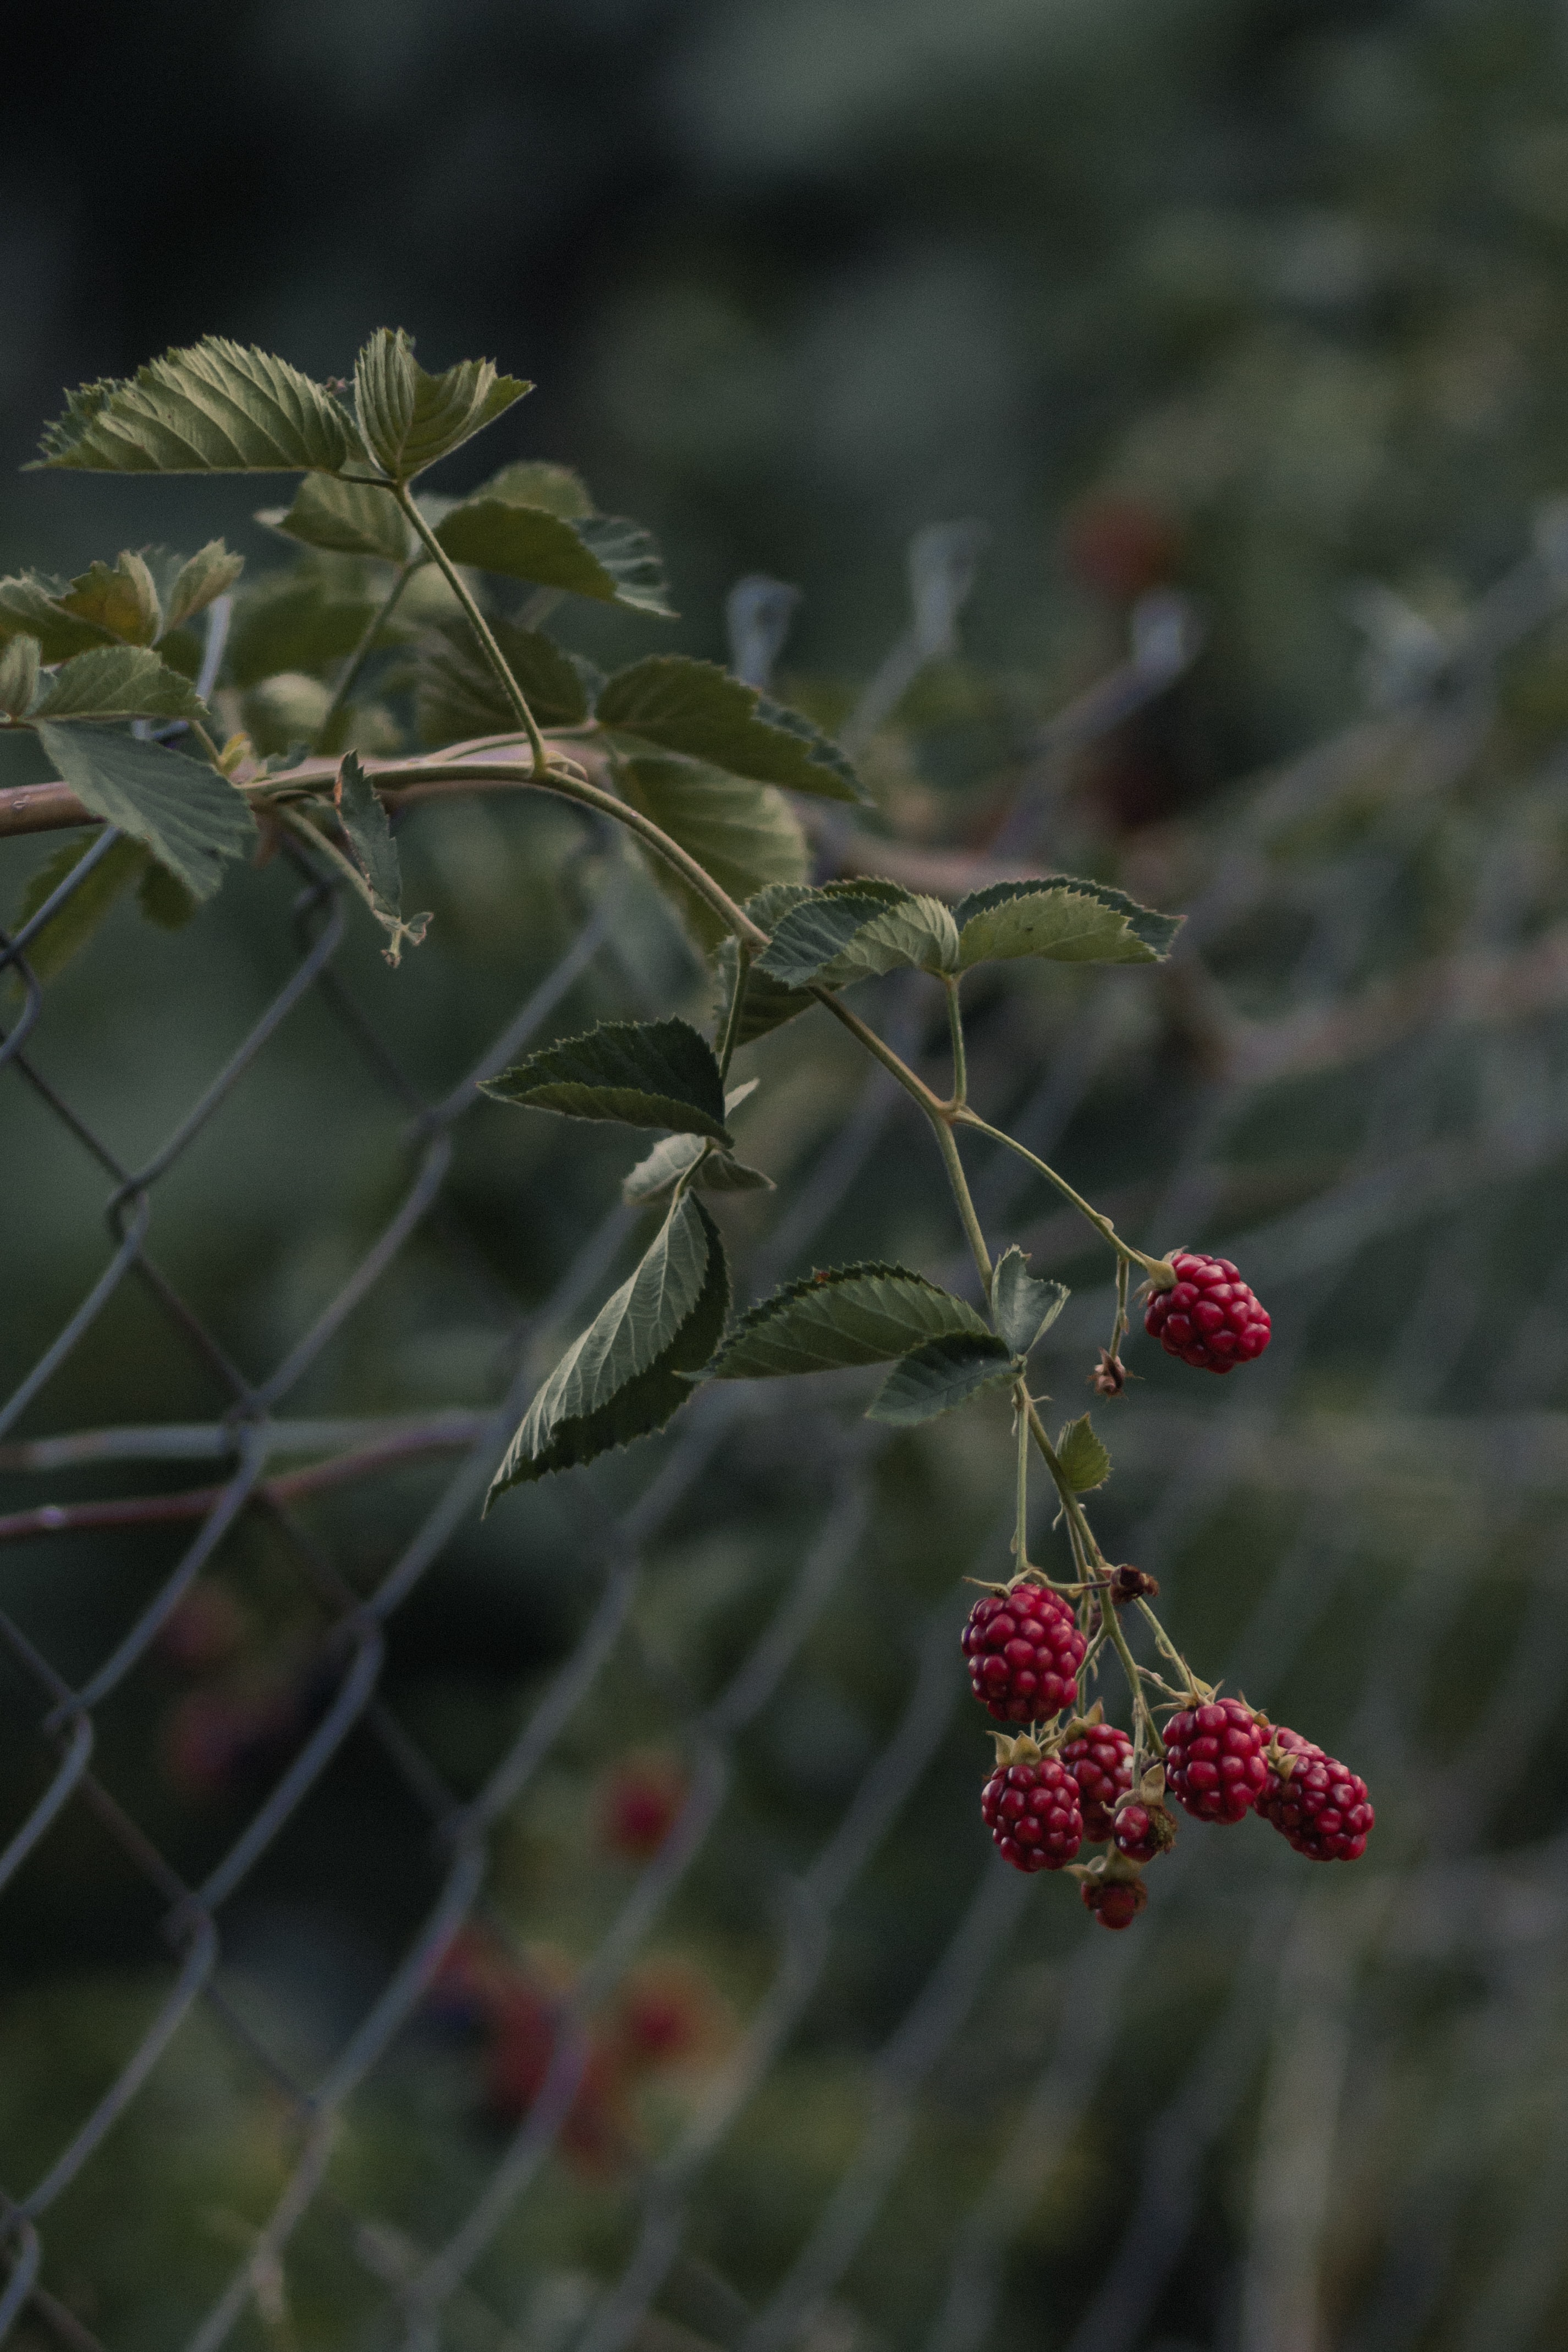 55554 download wallpaper Food, Raspberry, Branch, Berries screensavers and pictures for free